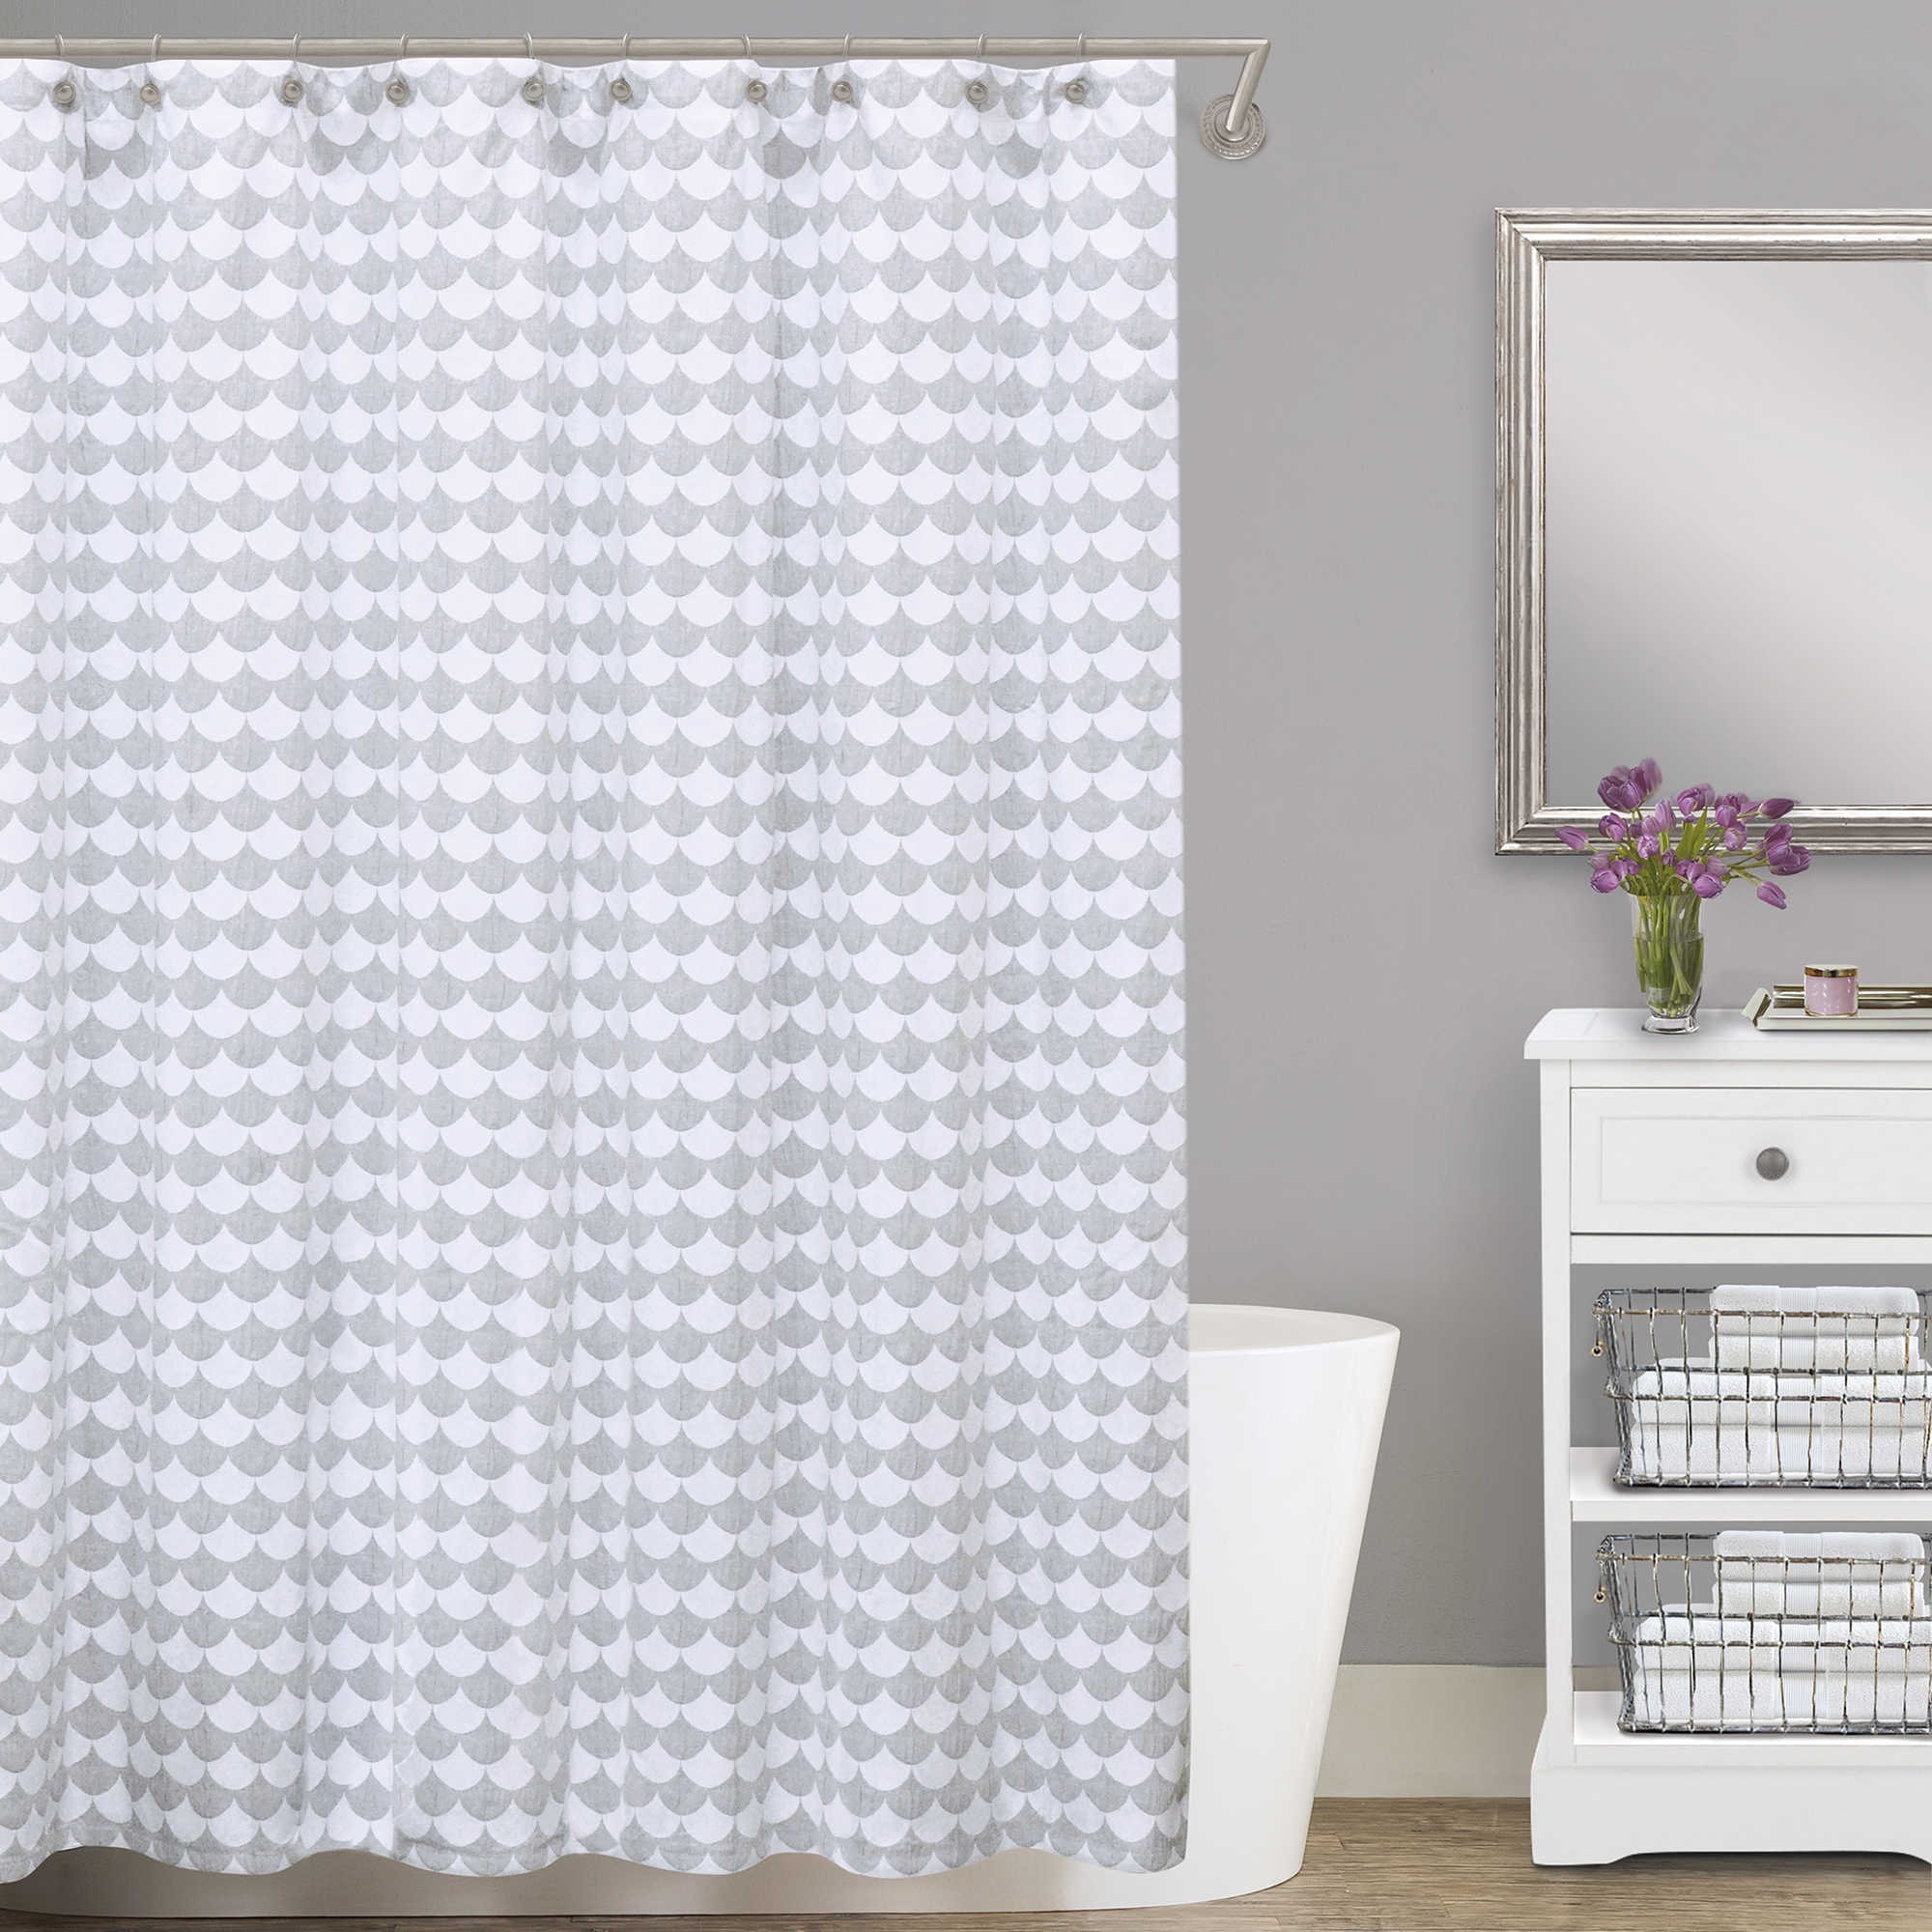 Extra Wide Shower Curtain Liner 144 • Shower Curtains Ideas